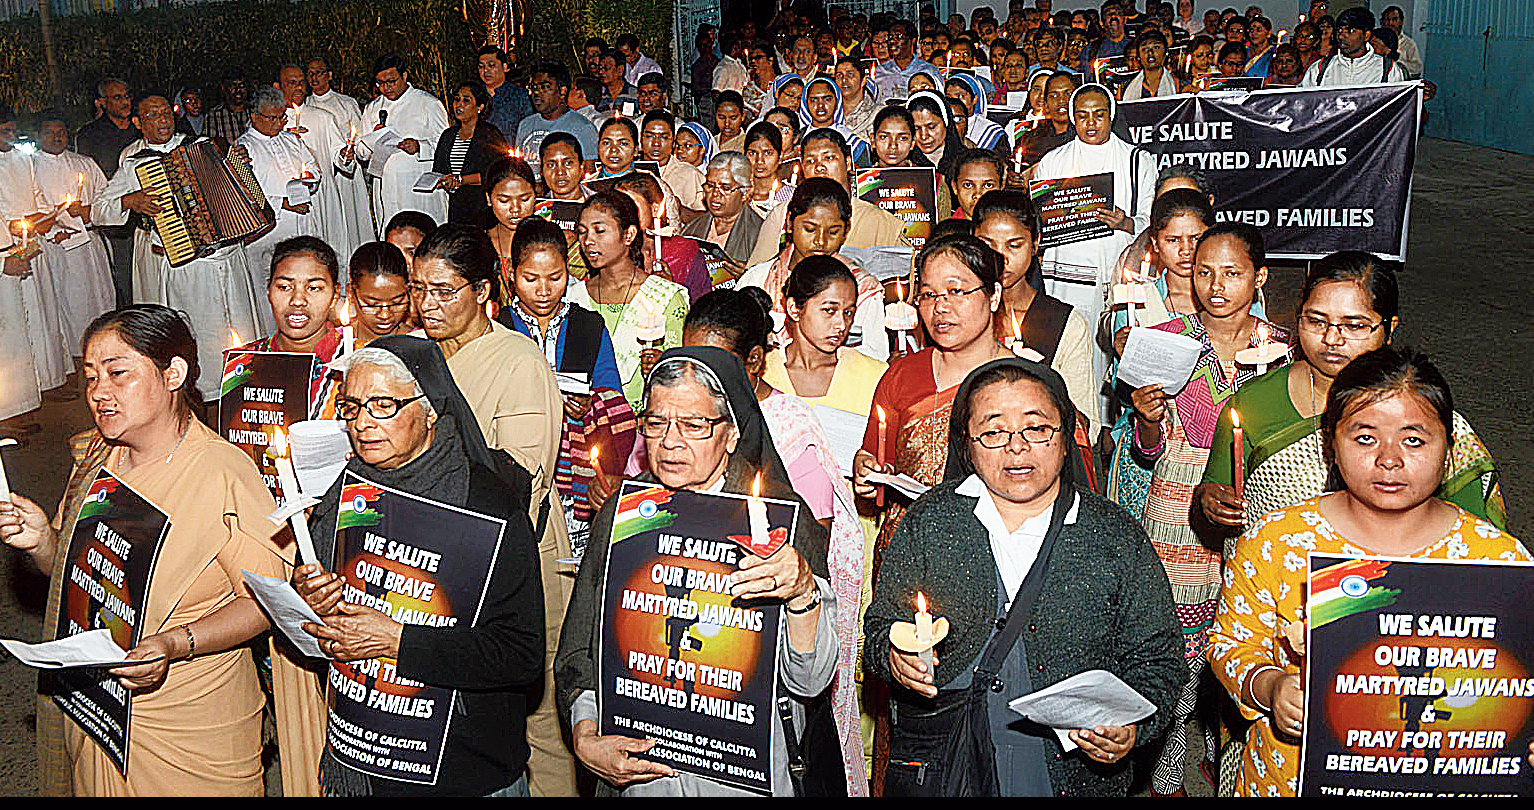 A peace rally by the Archdiocese of Calcutta on Monday to pay tribute to the CRPF troopers killed in the Pulwama attack on February 14